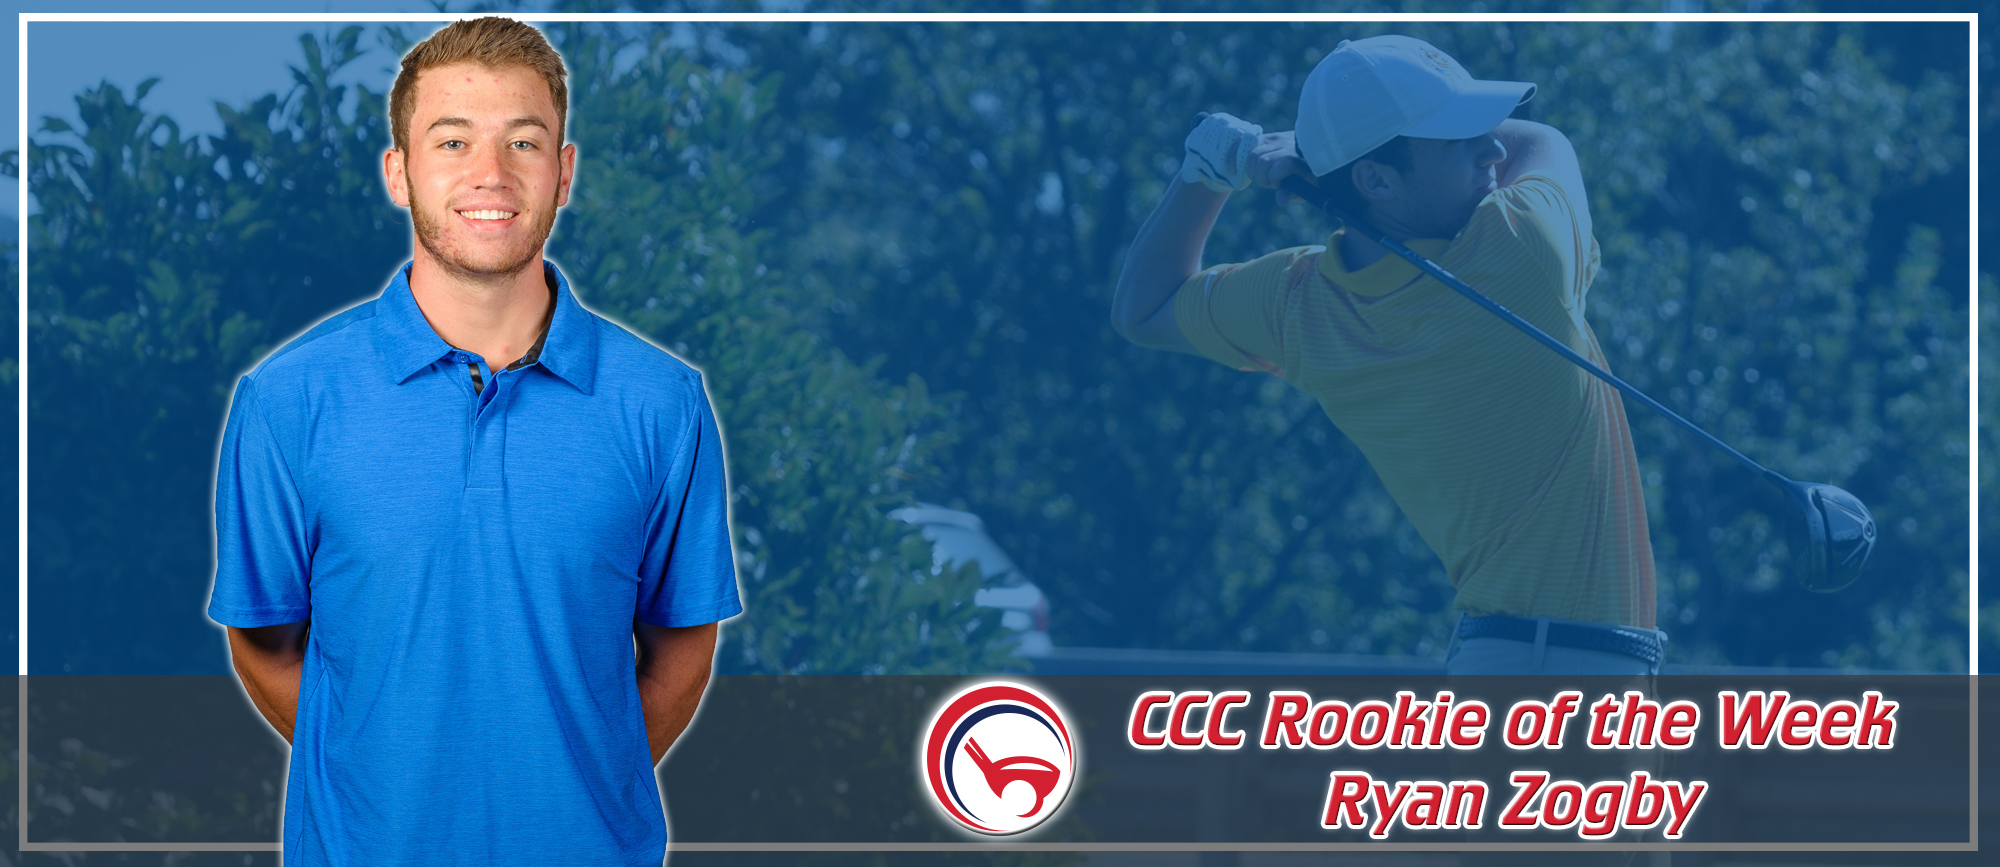 Ryan Zogby Earns CCC Rookie of the Week Honors